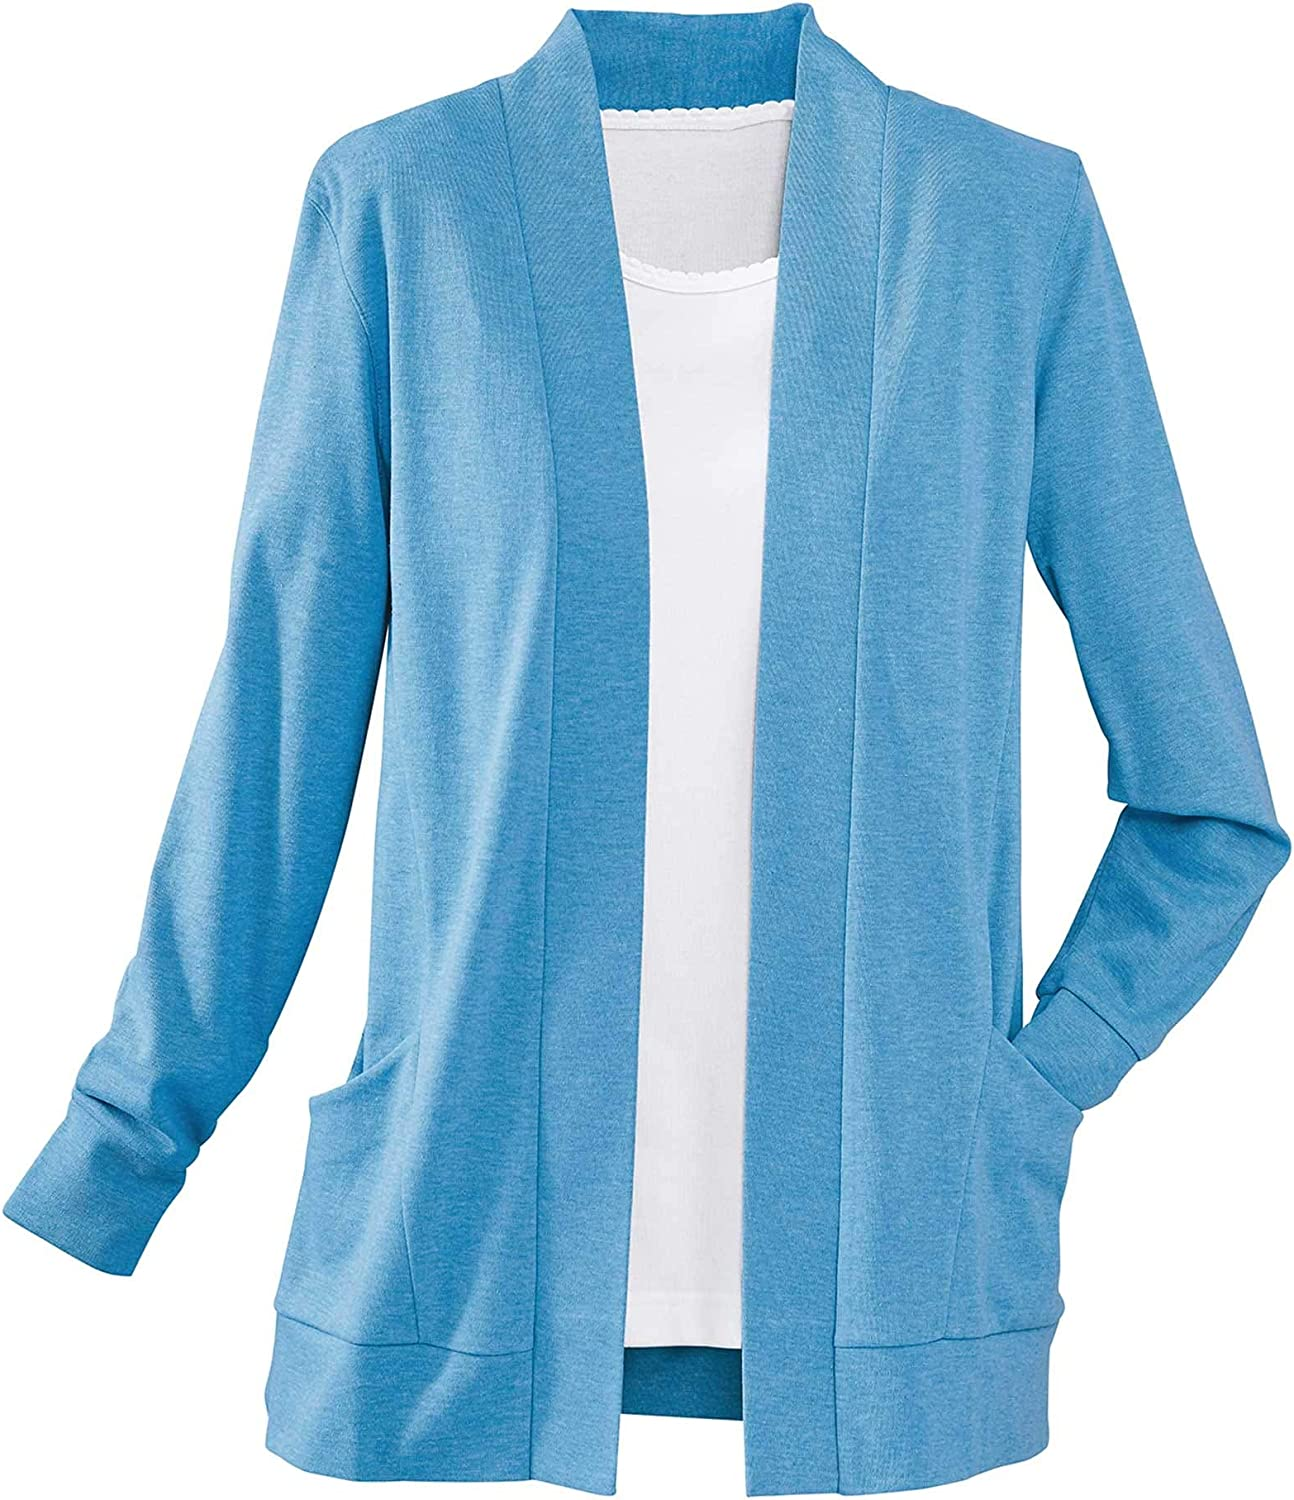 National Petites Open-Front Trellis Cardigan, Flattering Body Seams, Casual Fit, Long Sleeves Patch Pockets